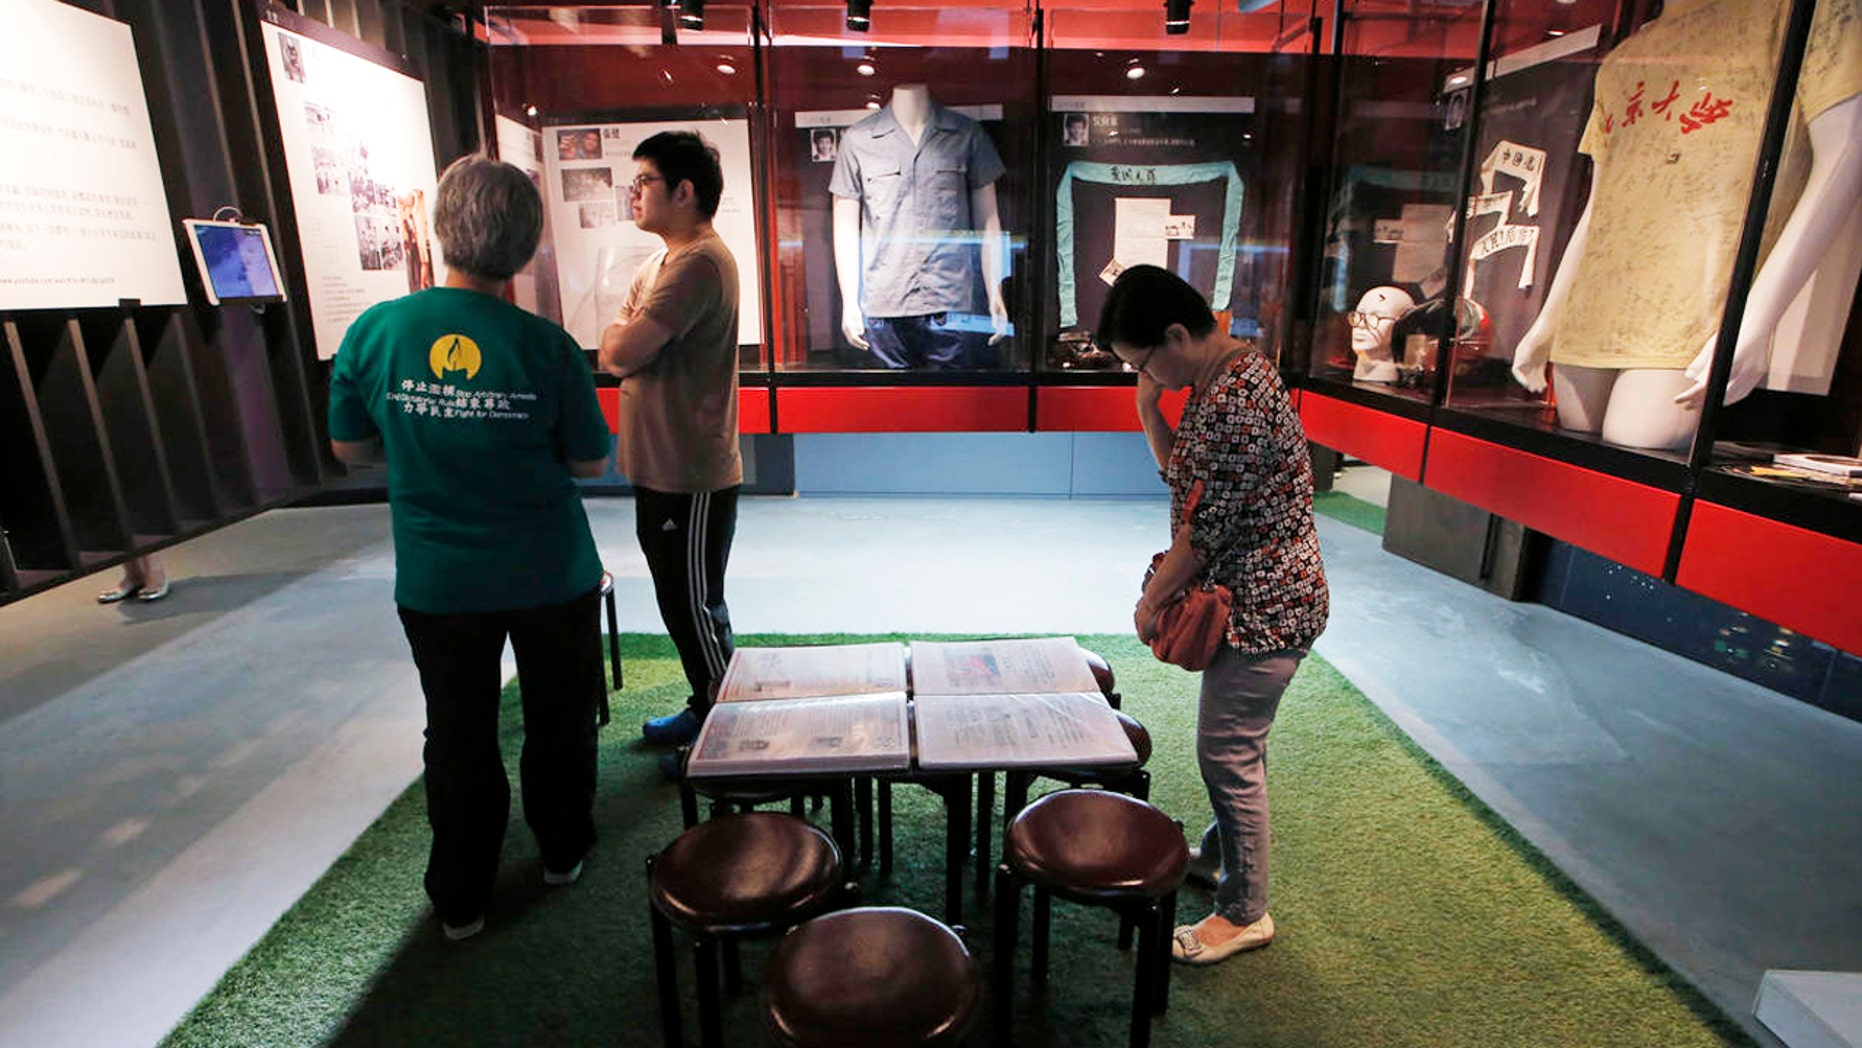 Visitors look at the exhibits in the June 4th Museum in Hong Kong, Friday, April 15, 2016. The operators of the world's only museum chronicling the Chinese government's brutal 1989 crackdown on student protesters in Beijing's Tiananmen Square say it faces closure because of a legal dispute. (AP Photo/Kin Cheung)